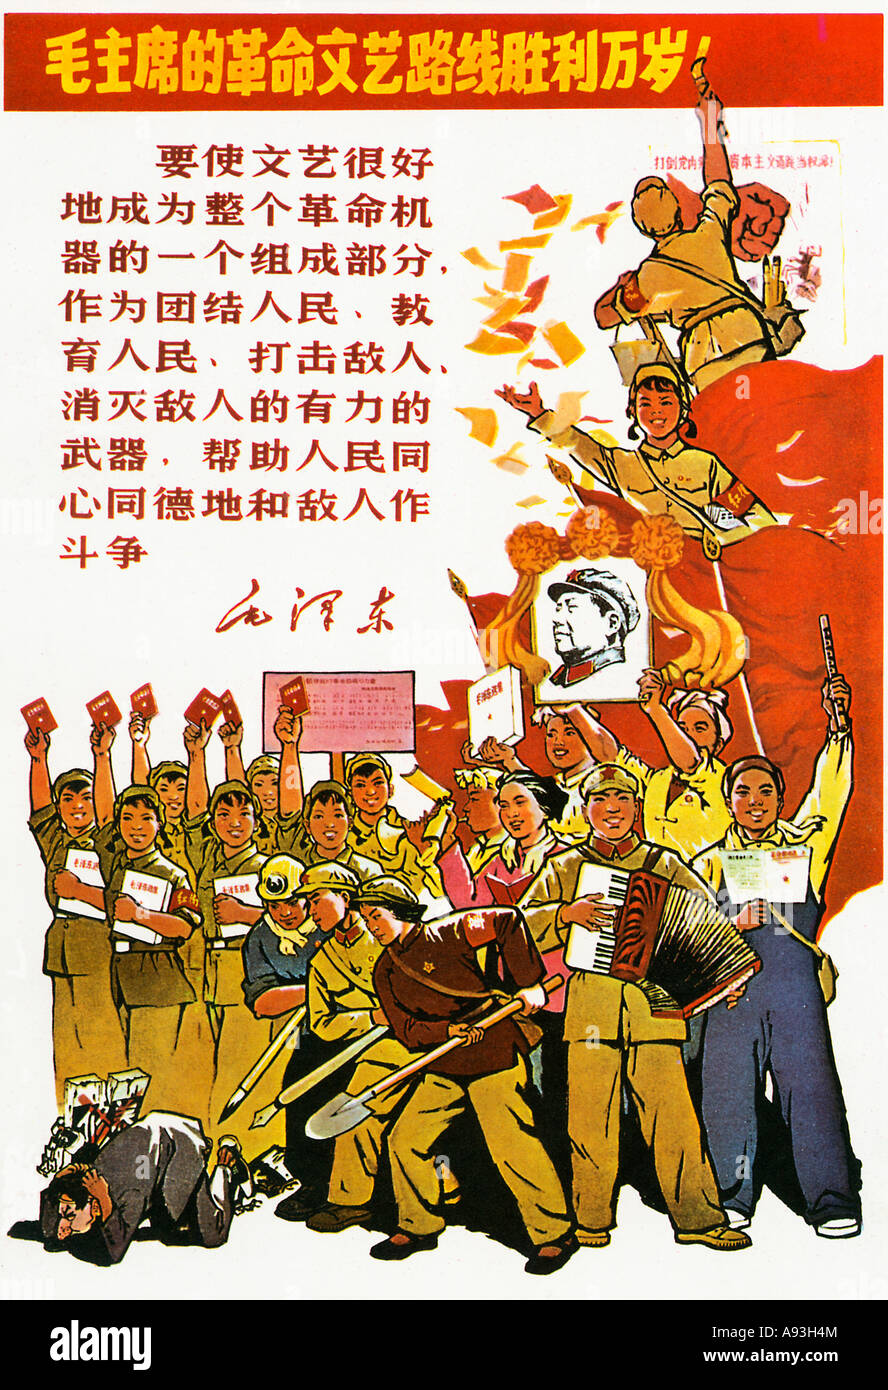 Hail The Defeat Of Revisionism in Our China 1967 poster from the period of the Chinese Cultural Revolution - Stock Image